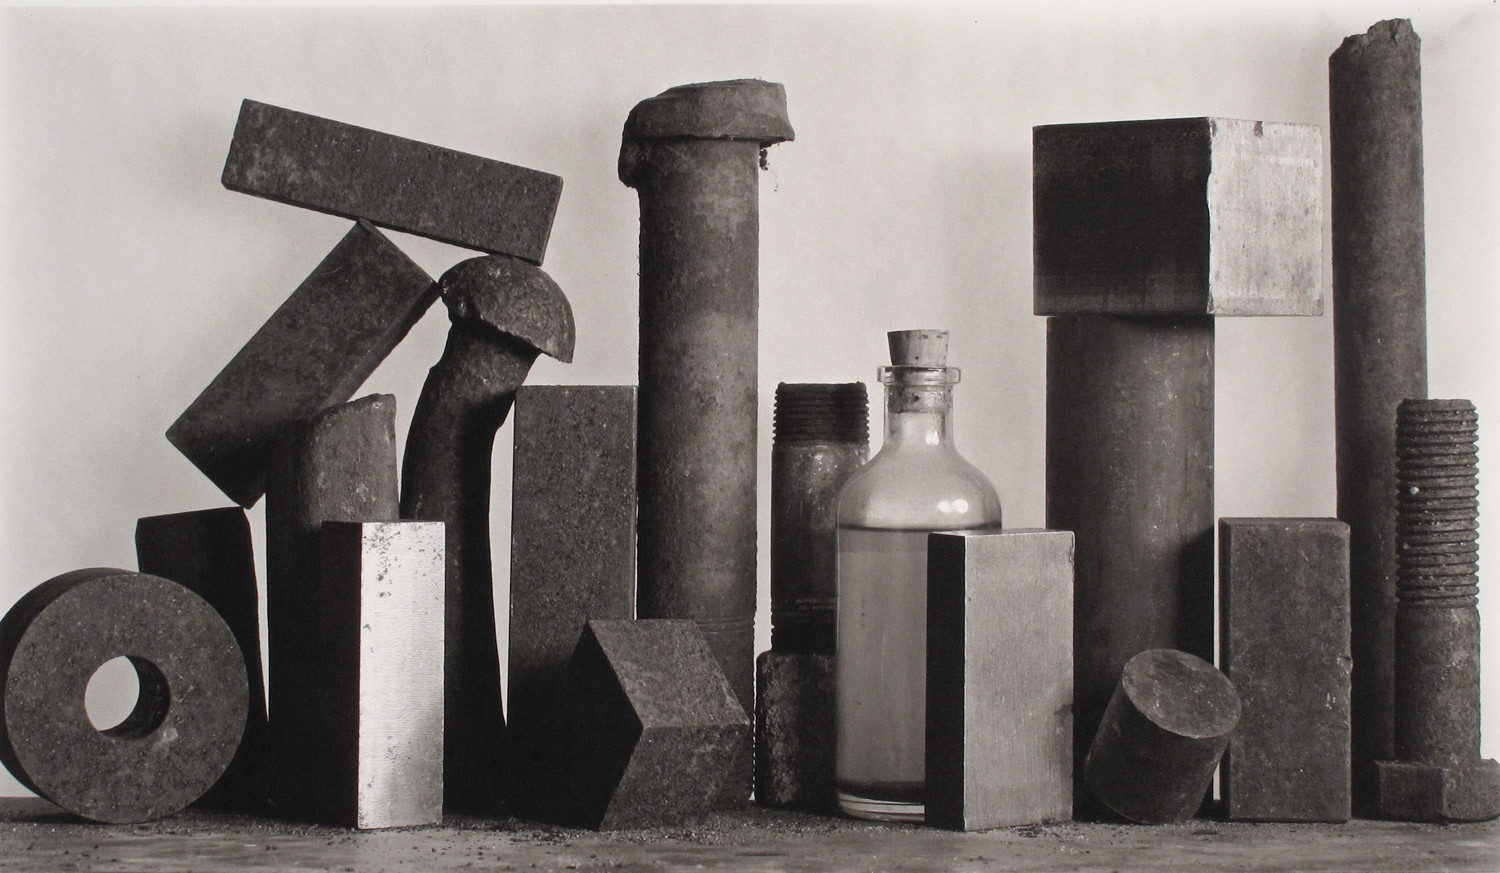 Irving Penn, 18 Pieces with Medicine Bottle, New York, 1980